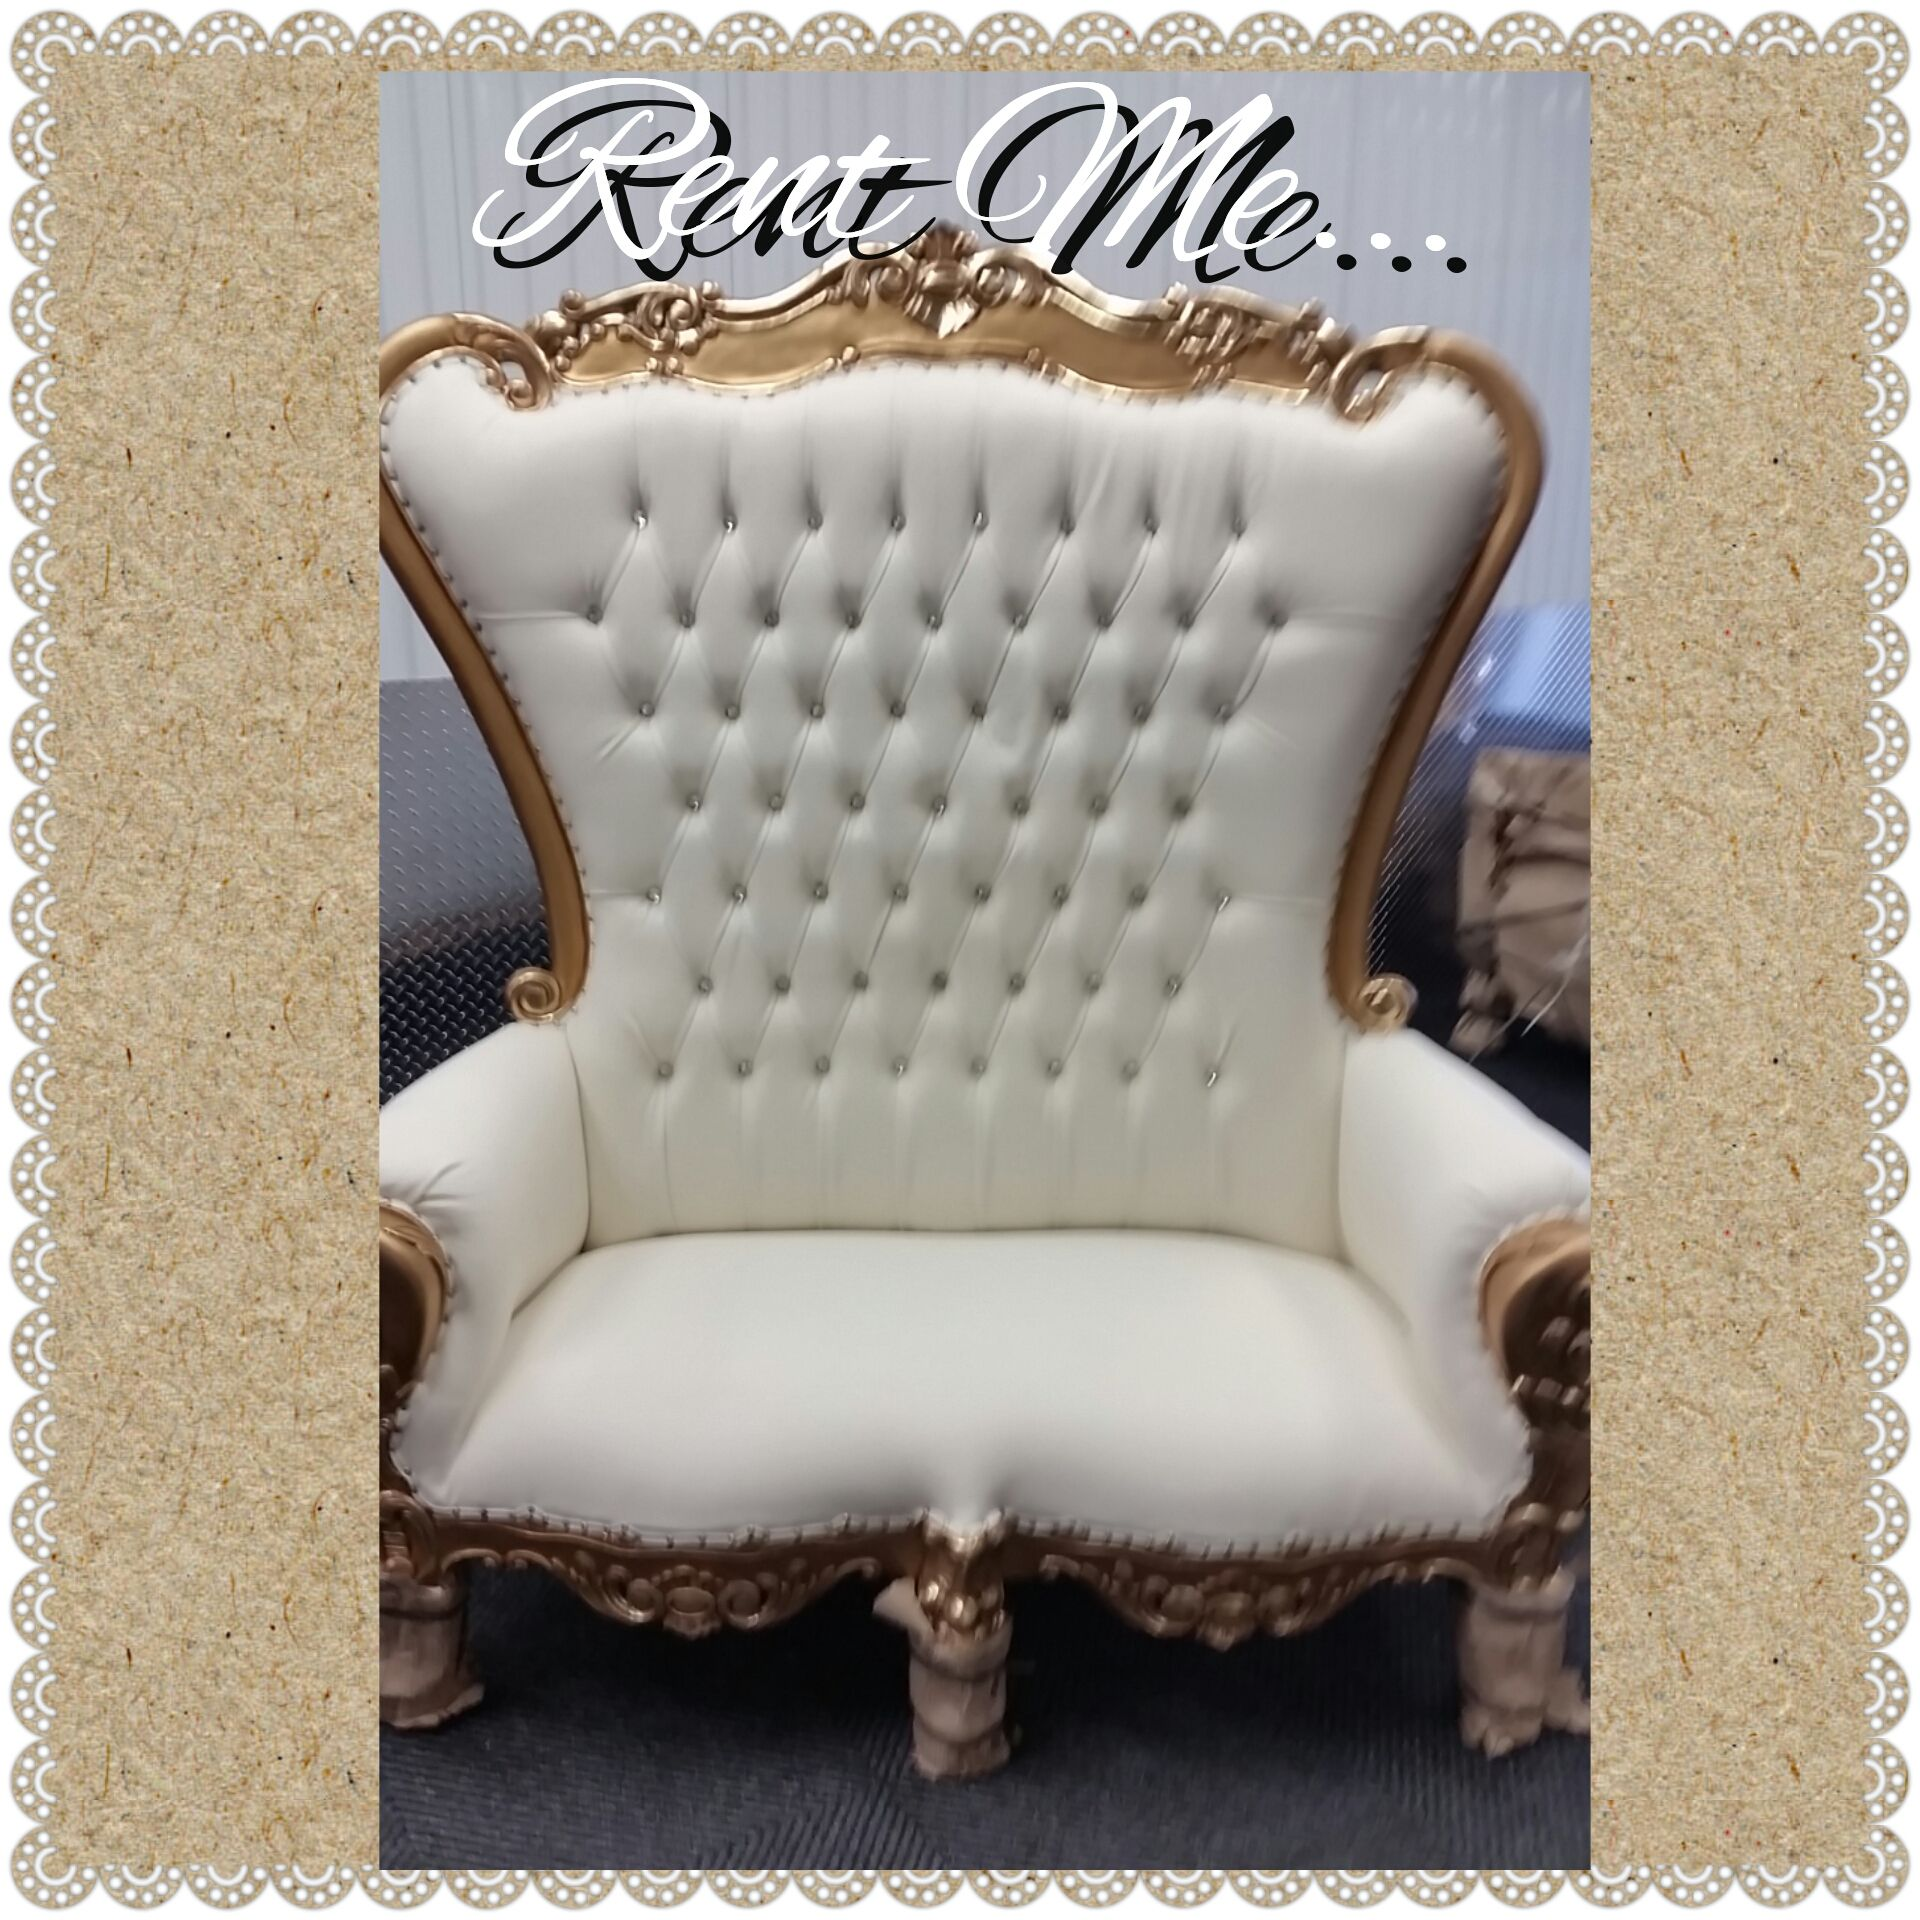 Pin by SIMPLYCREATIVE2rentals on Baby shower chair rental in nyc